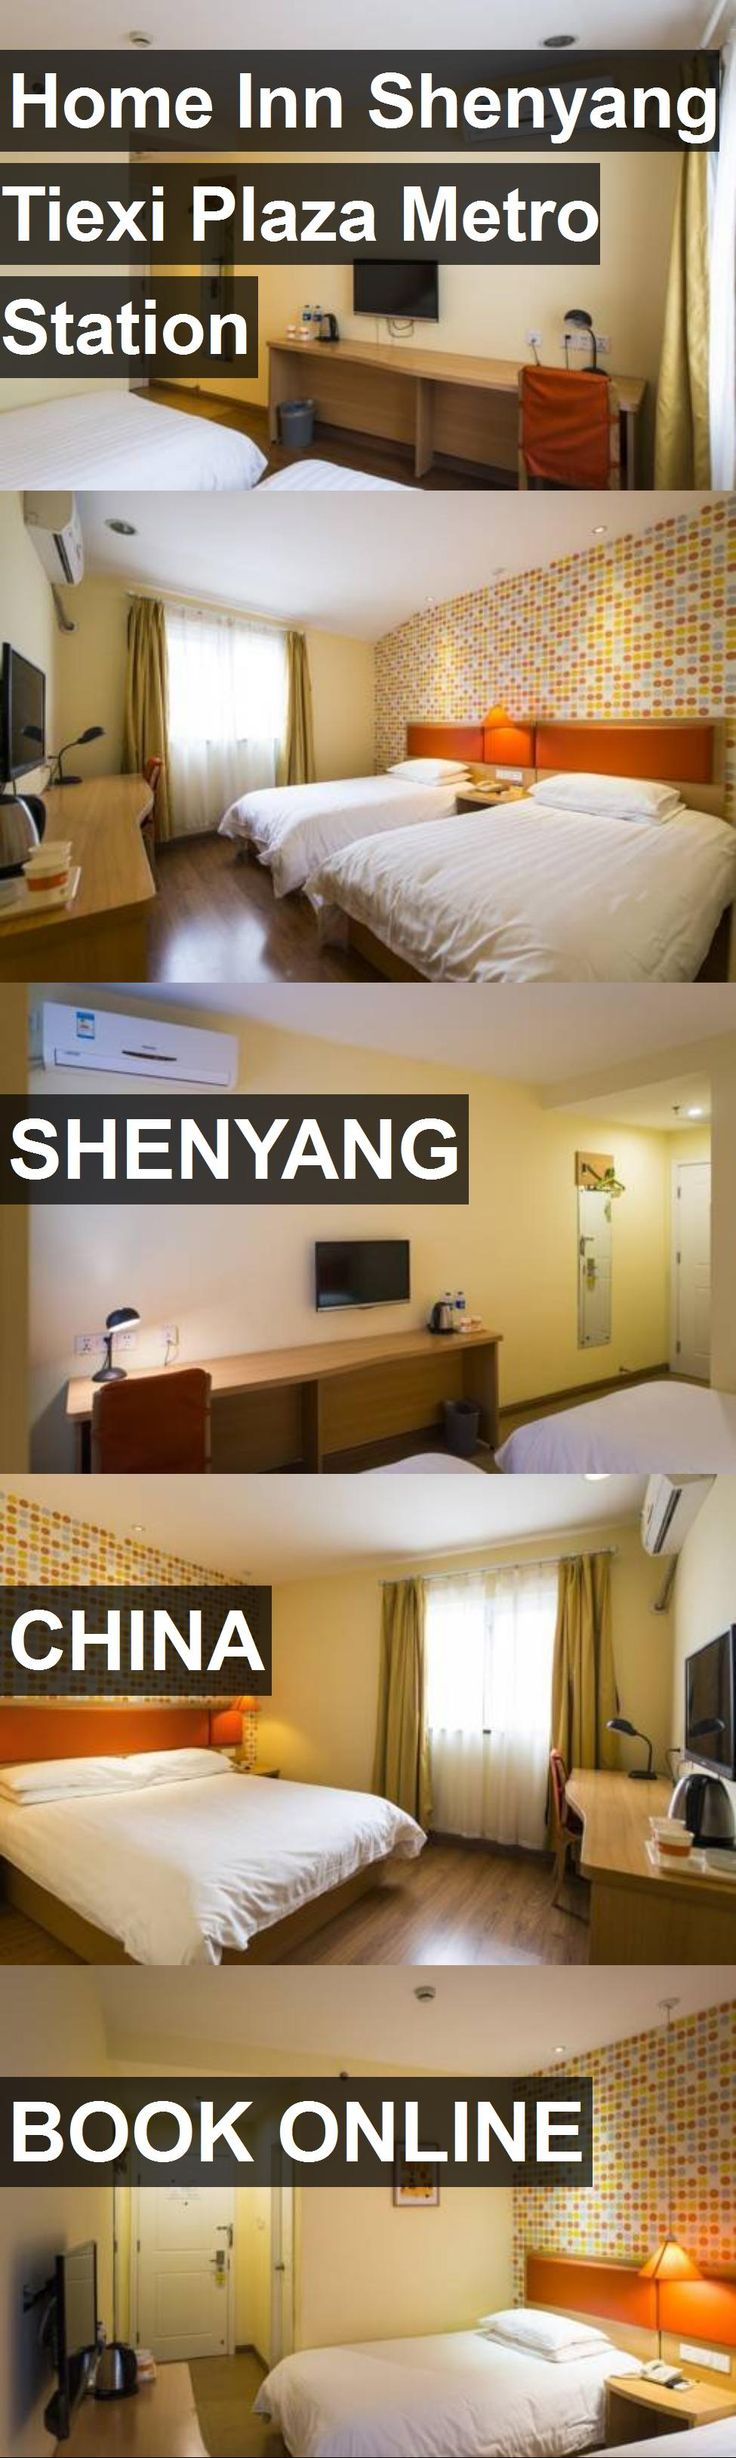 Hotel Home Inn Shenyang Tiexi Plaza Metro Station in Shenyang, China. For more information, photos, reviews and best prices please follow the link. #China #Shenyang #hotel #travel #vacation